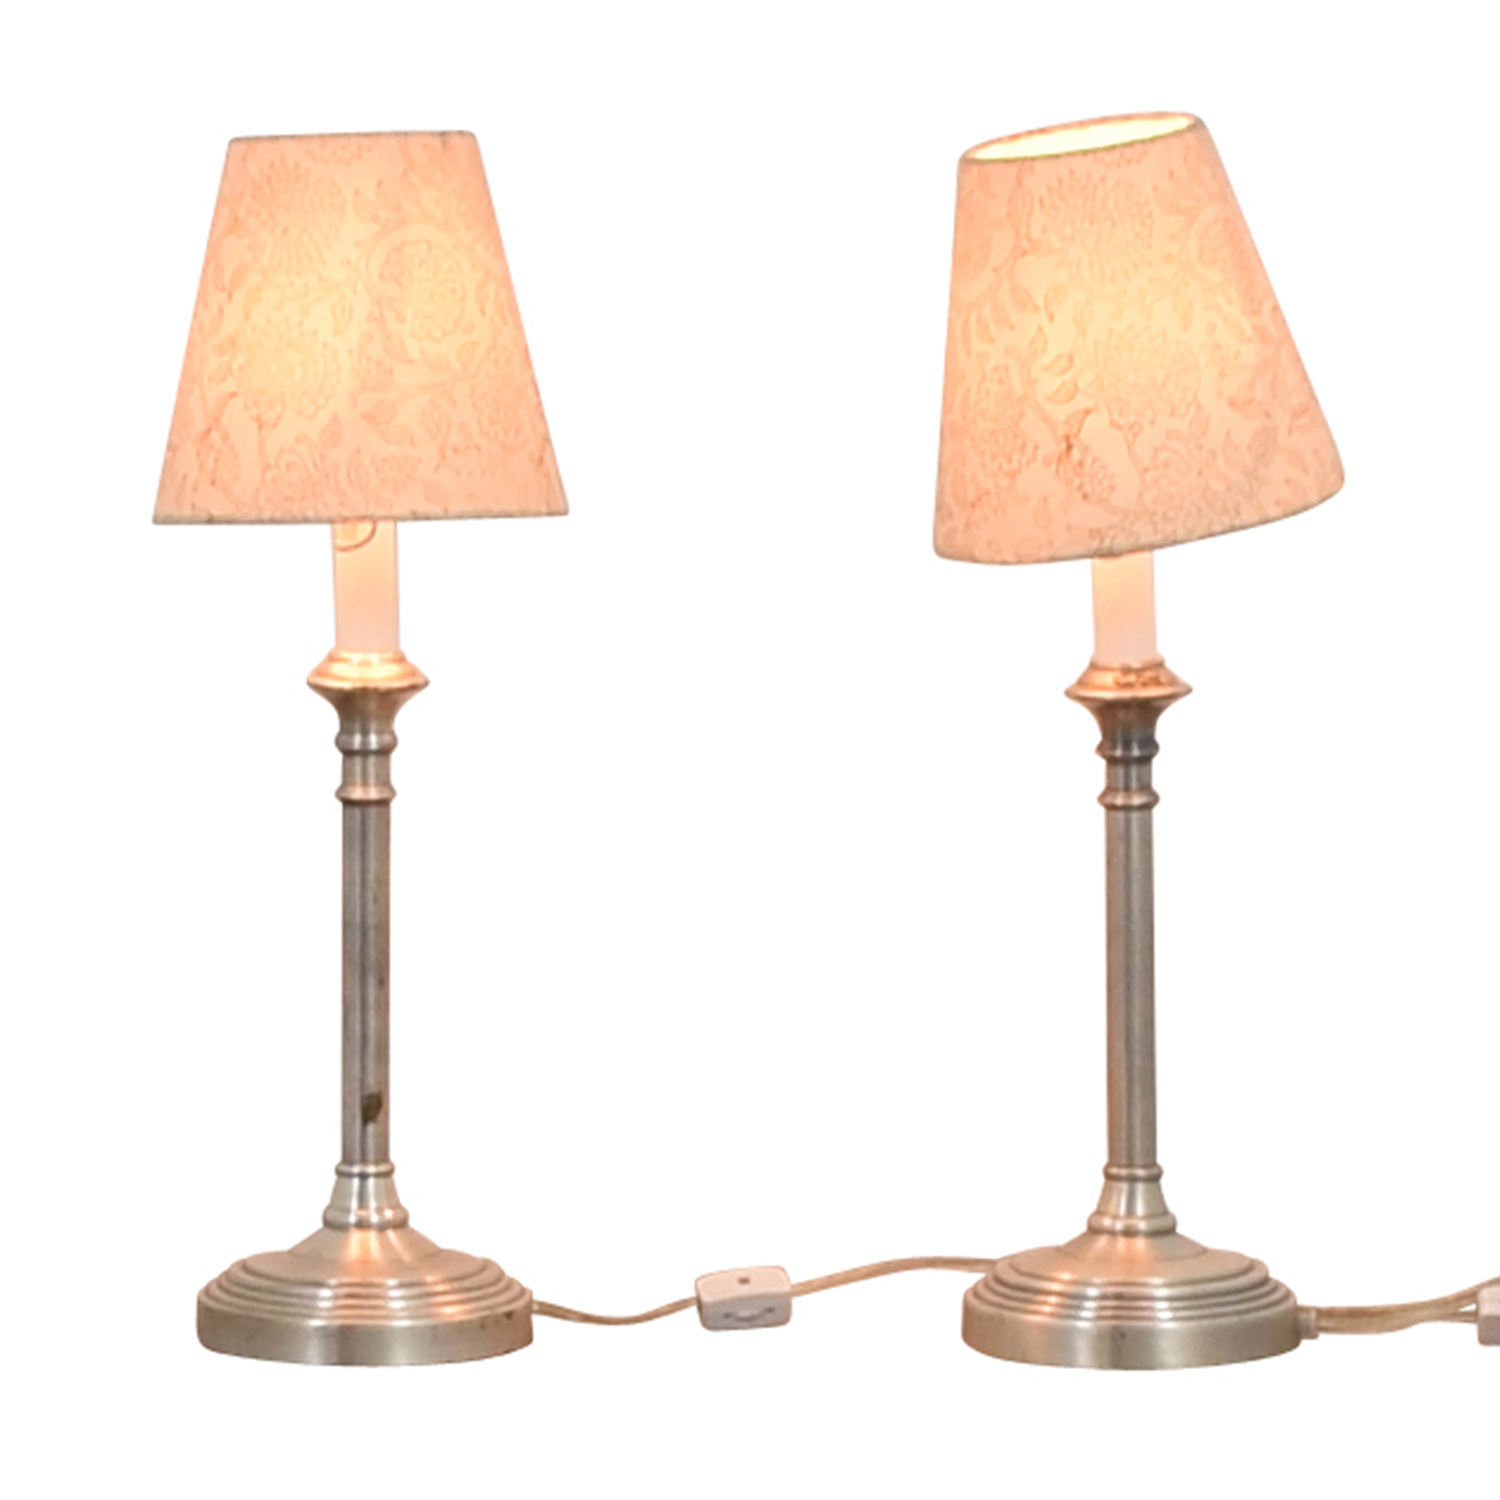 Pottery Barn Pottery Barn Chrome Lamps with Floral Shades White/Metal